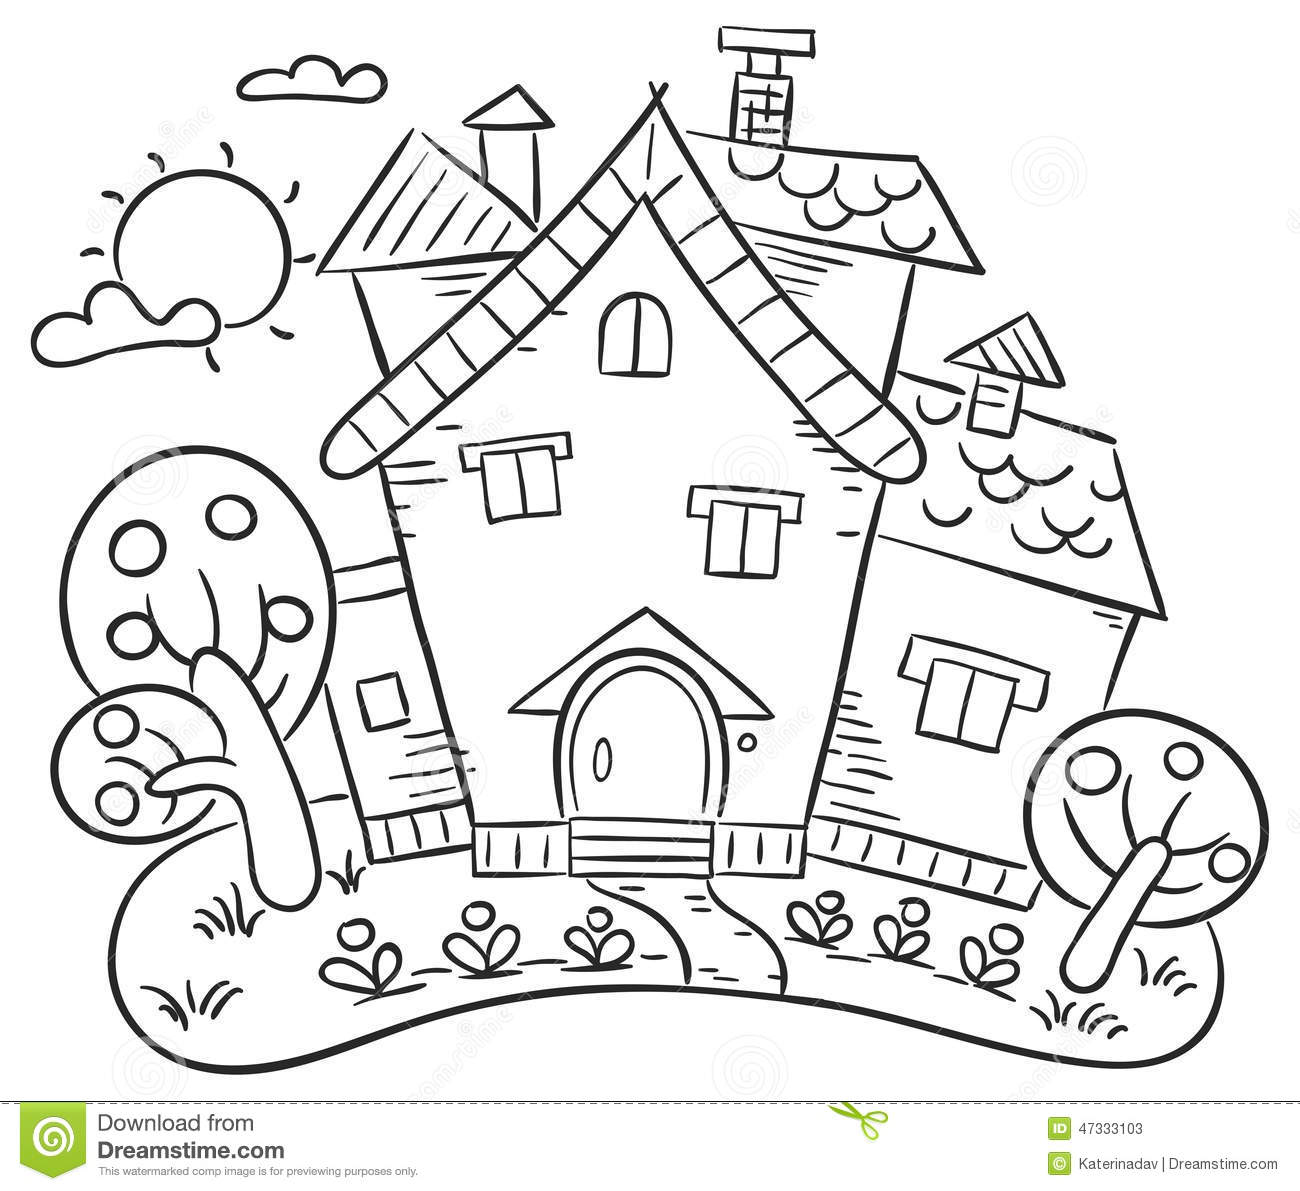 Tree coloring pages only coloring pages - Countryside House With A Garden Stock Vector Image 47333103